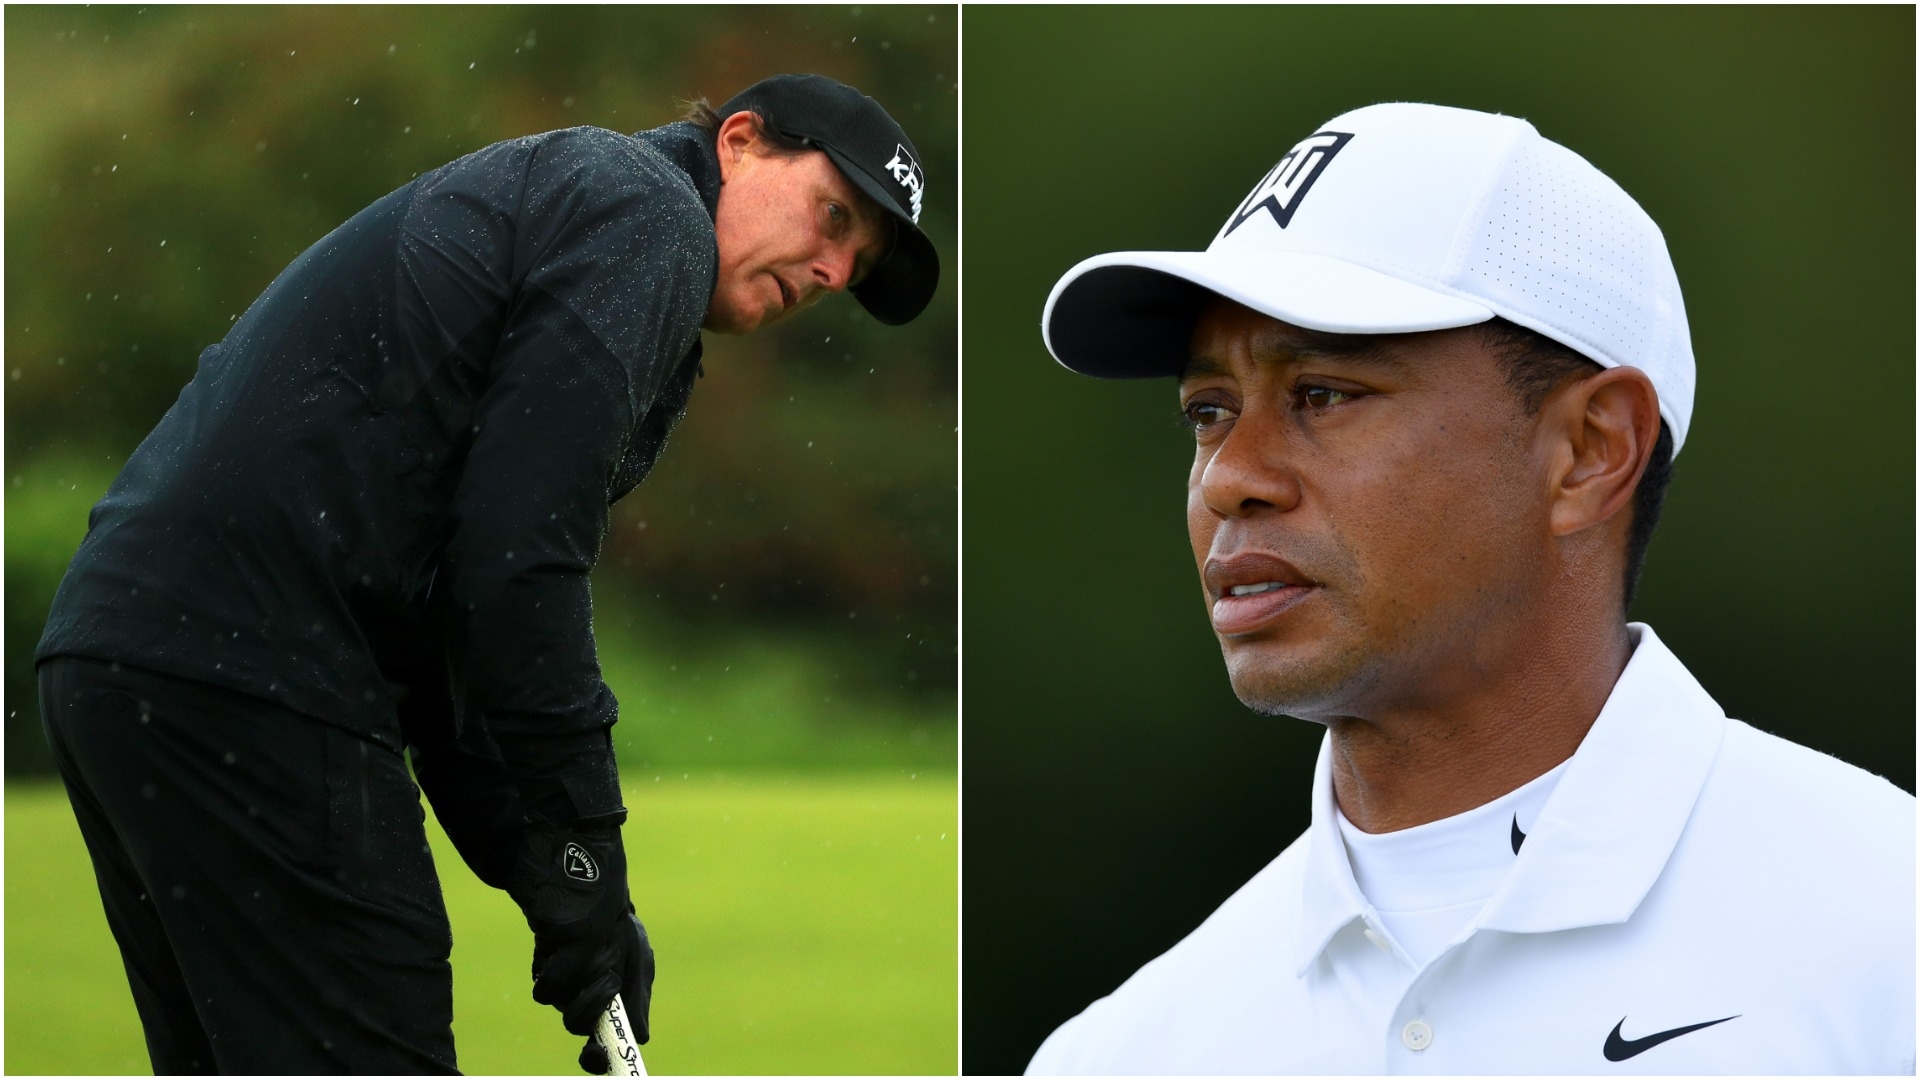 Tiger Woods and Phil Mickelson miss same major cut for first time